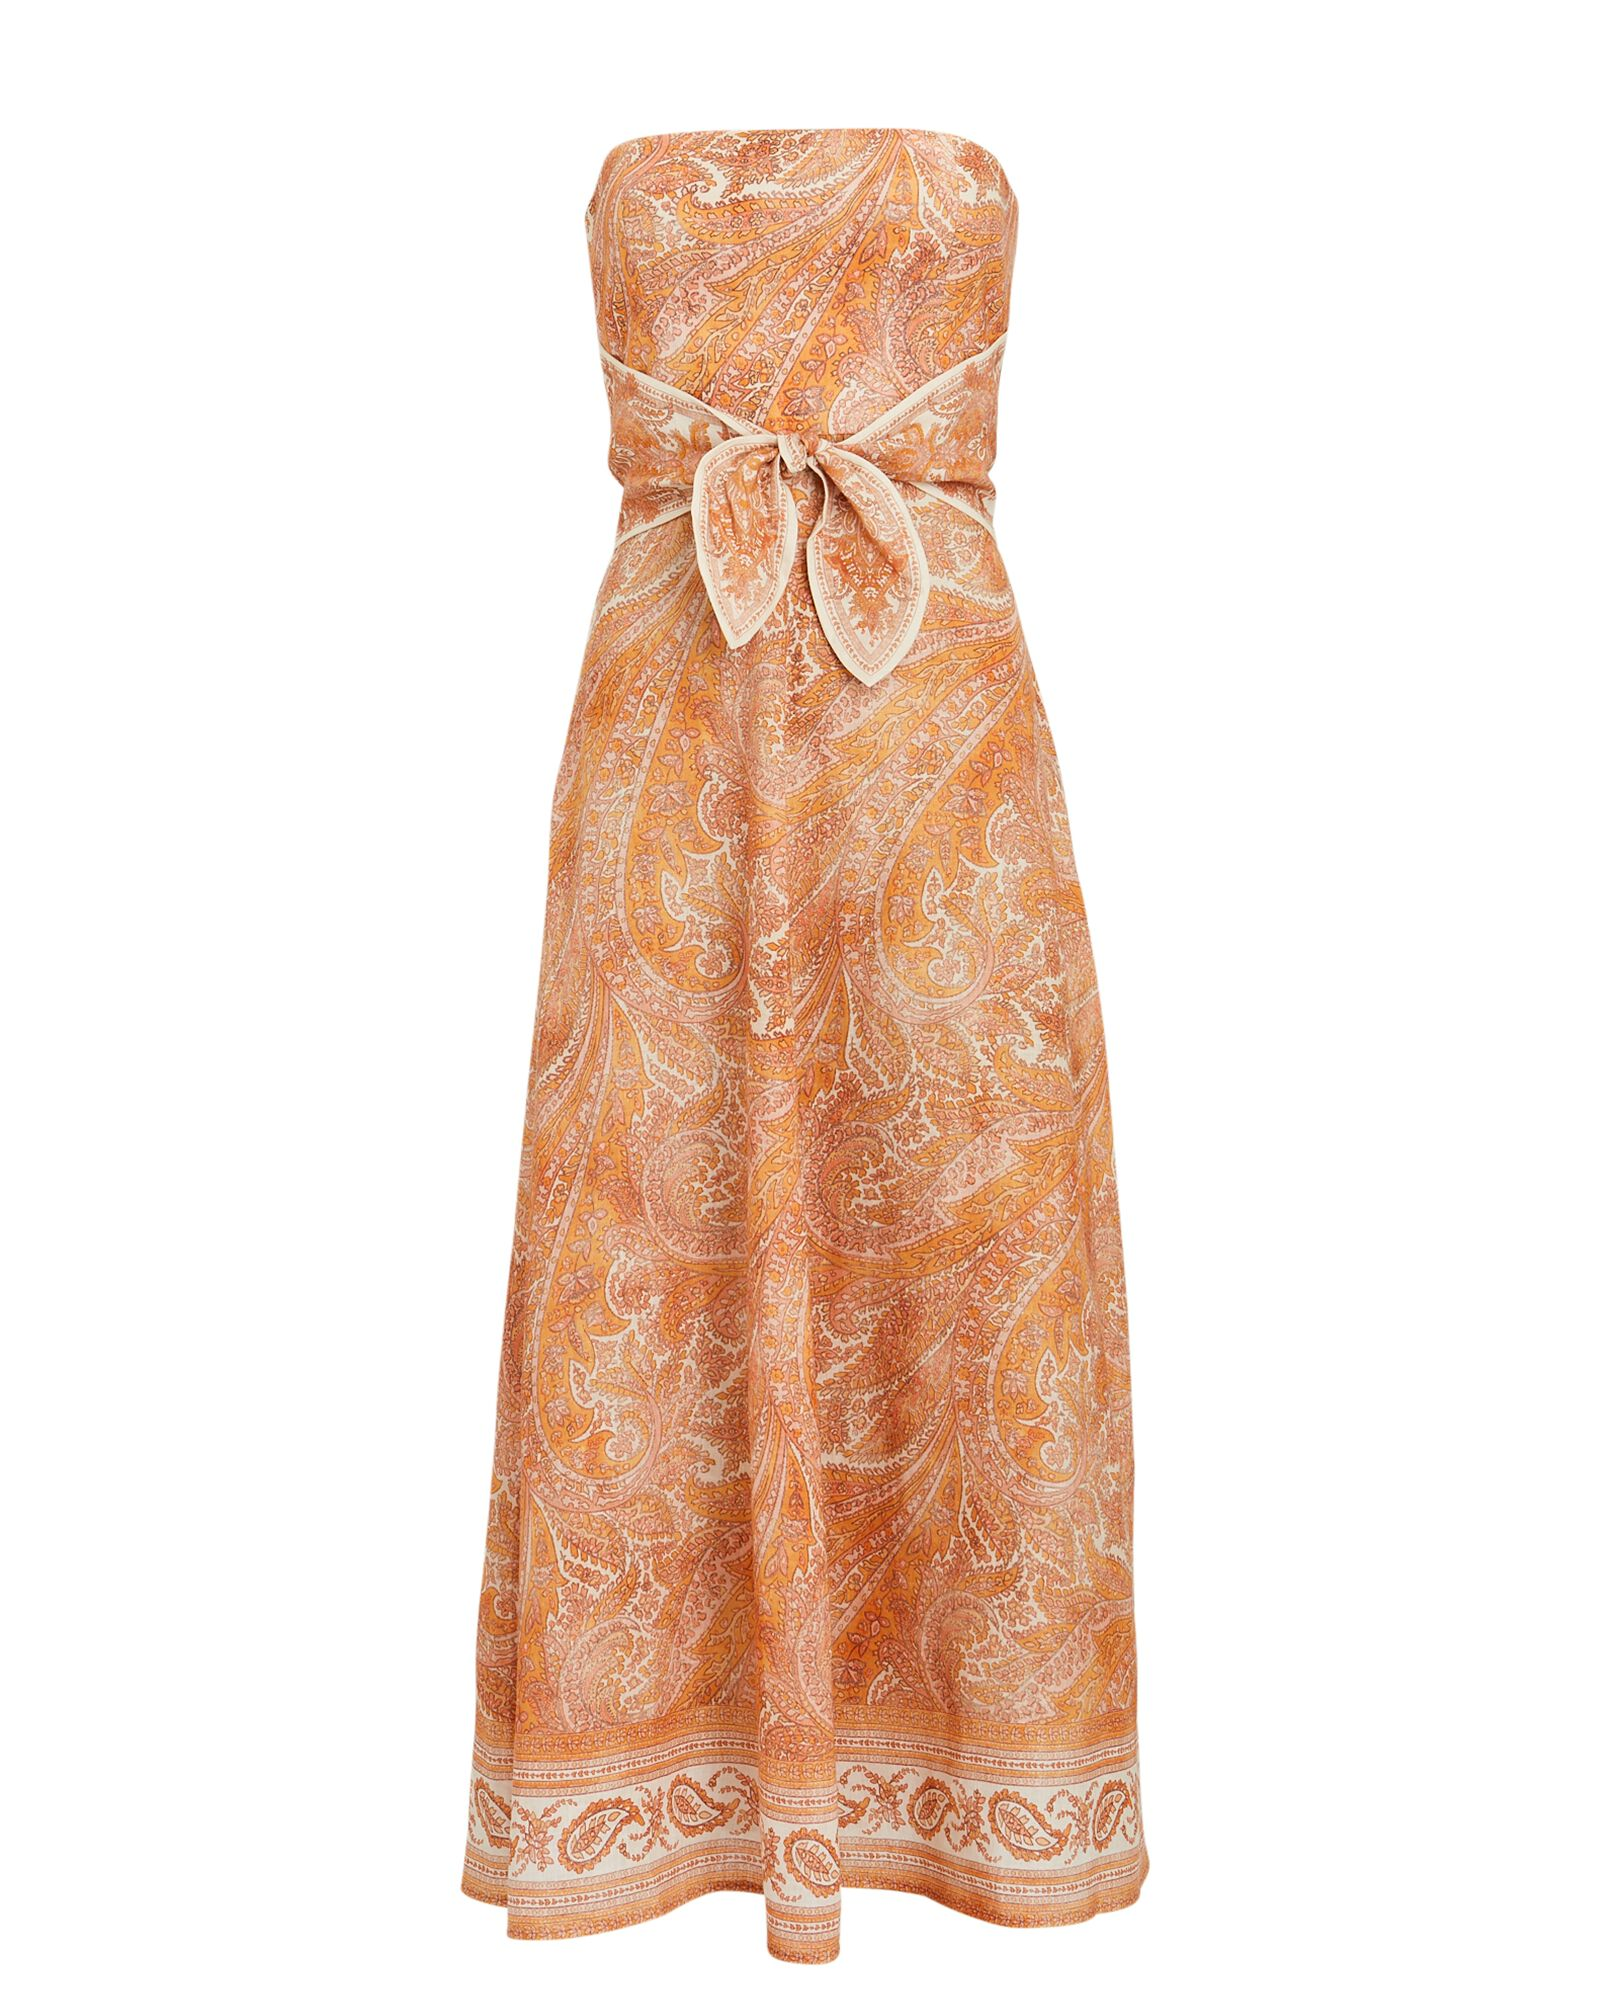 Brighton Strapless Paisley Linen Dress, ORANGE, hi-res